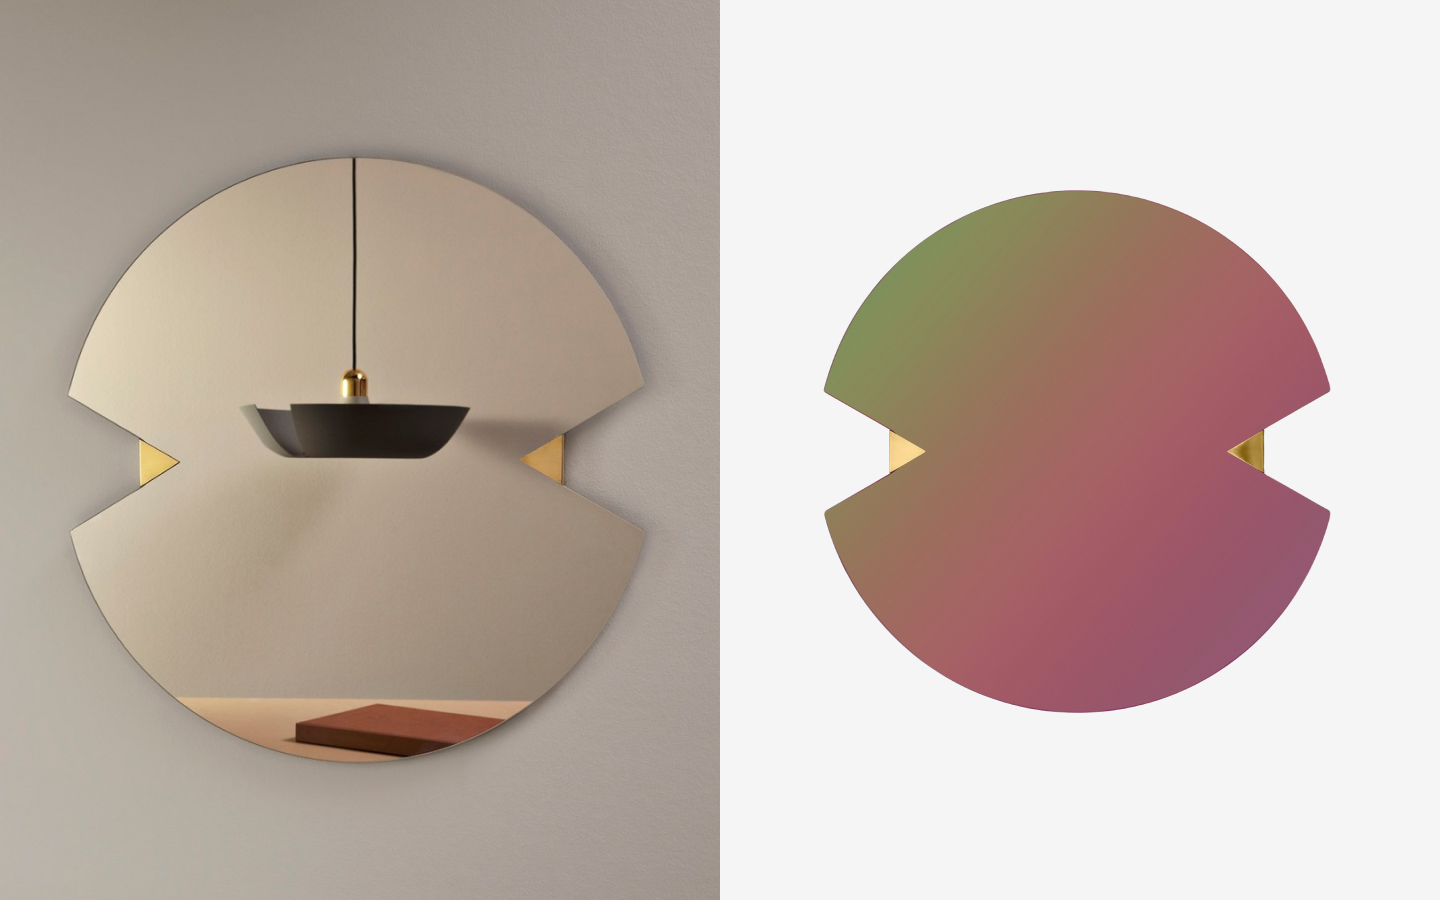 Round mirror with wedge shaped cut-outs, polished brass details and tinted glass